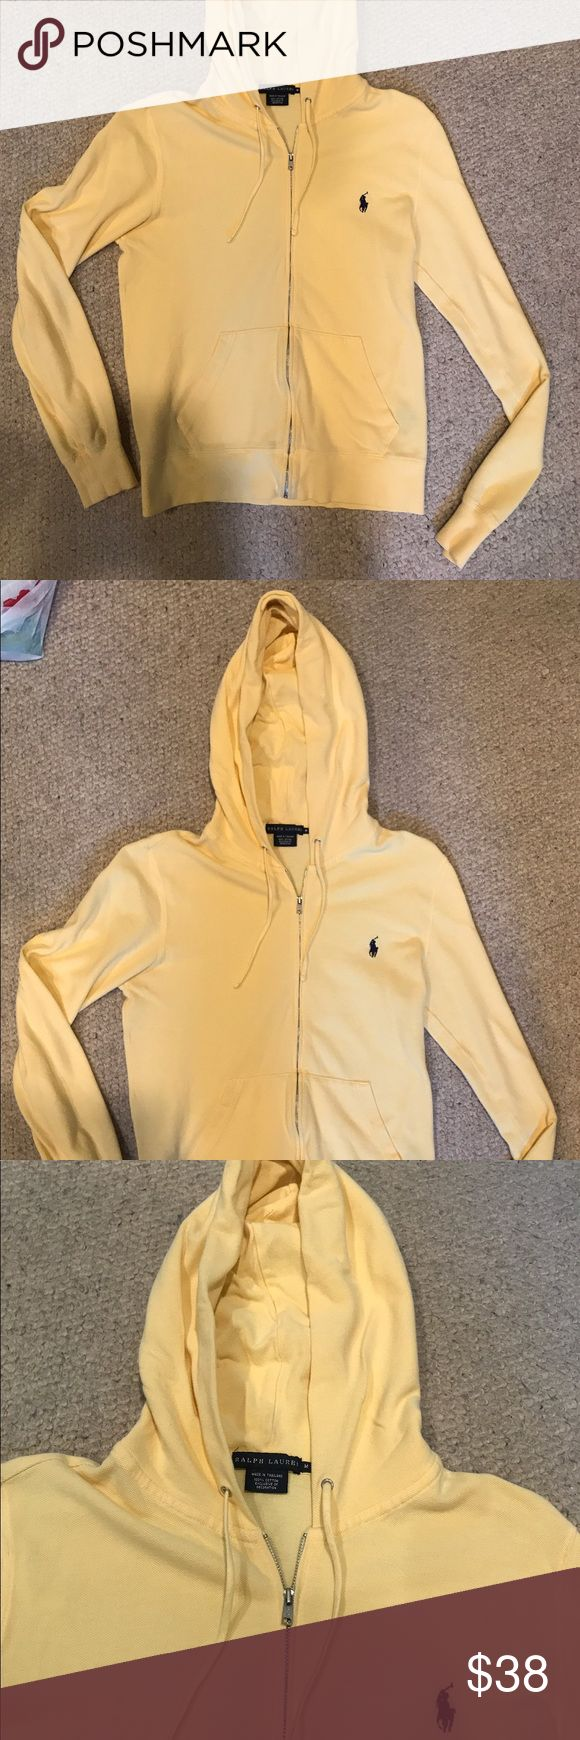 Ralph Lauren Yellow Zip Up Hoodie I'm selling a super soft, yellow zip-up hoodie by Ralph Lauren. I got it as a gift but only wore it 4-5 times. The hoodie shows no sign of wear. It has a hood and is great for staying cozy when it rains outside. EUC. Ralph Lauren Tops Sweatshirts & Hoodies